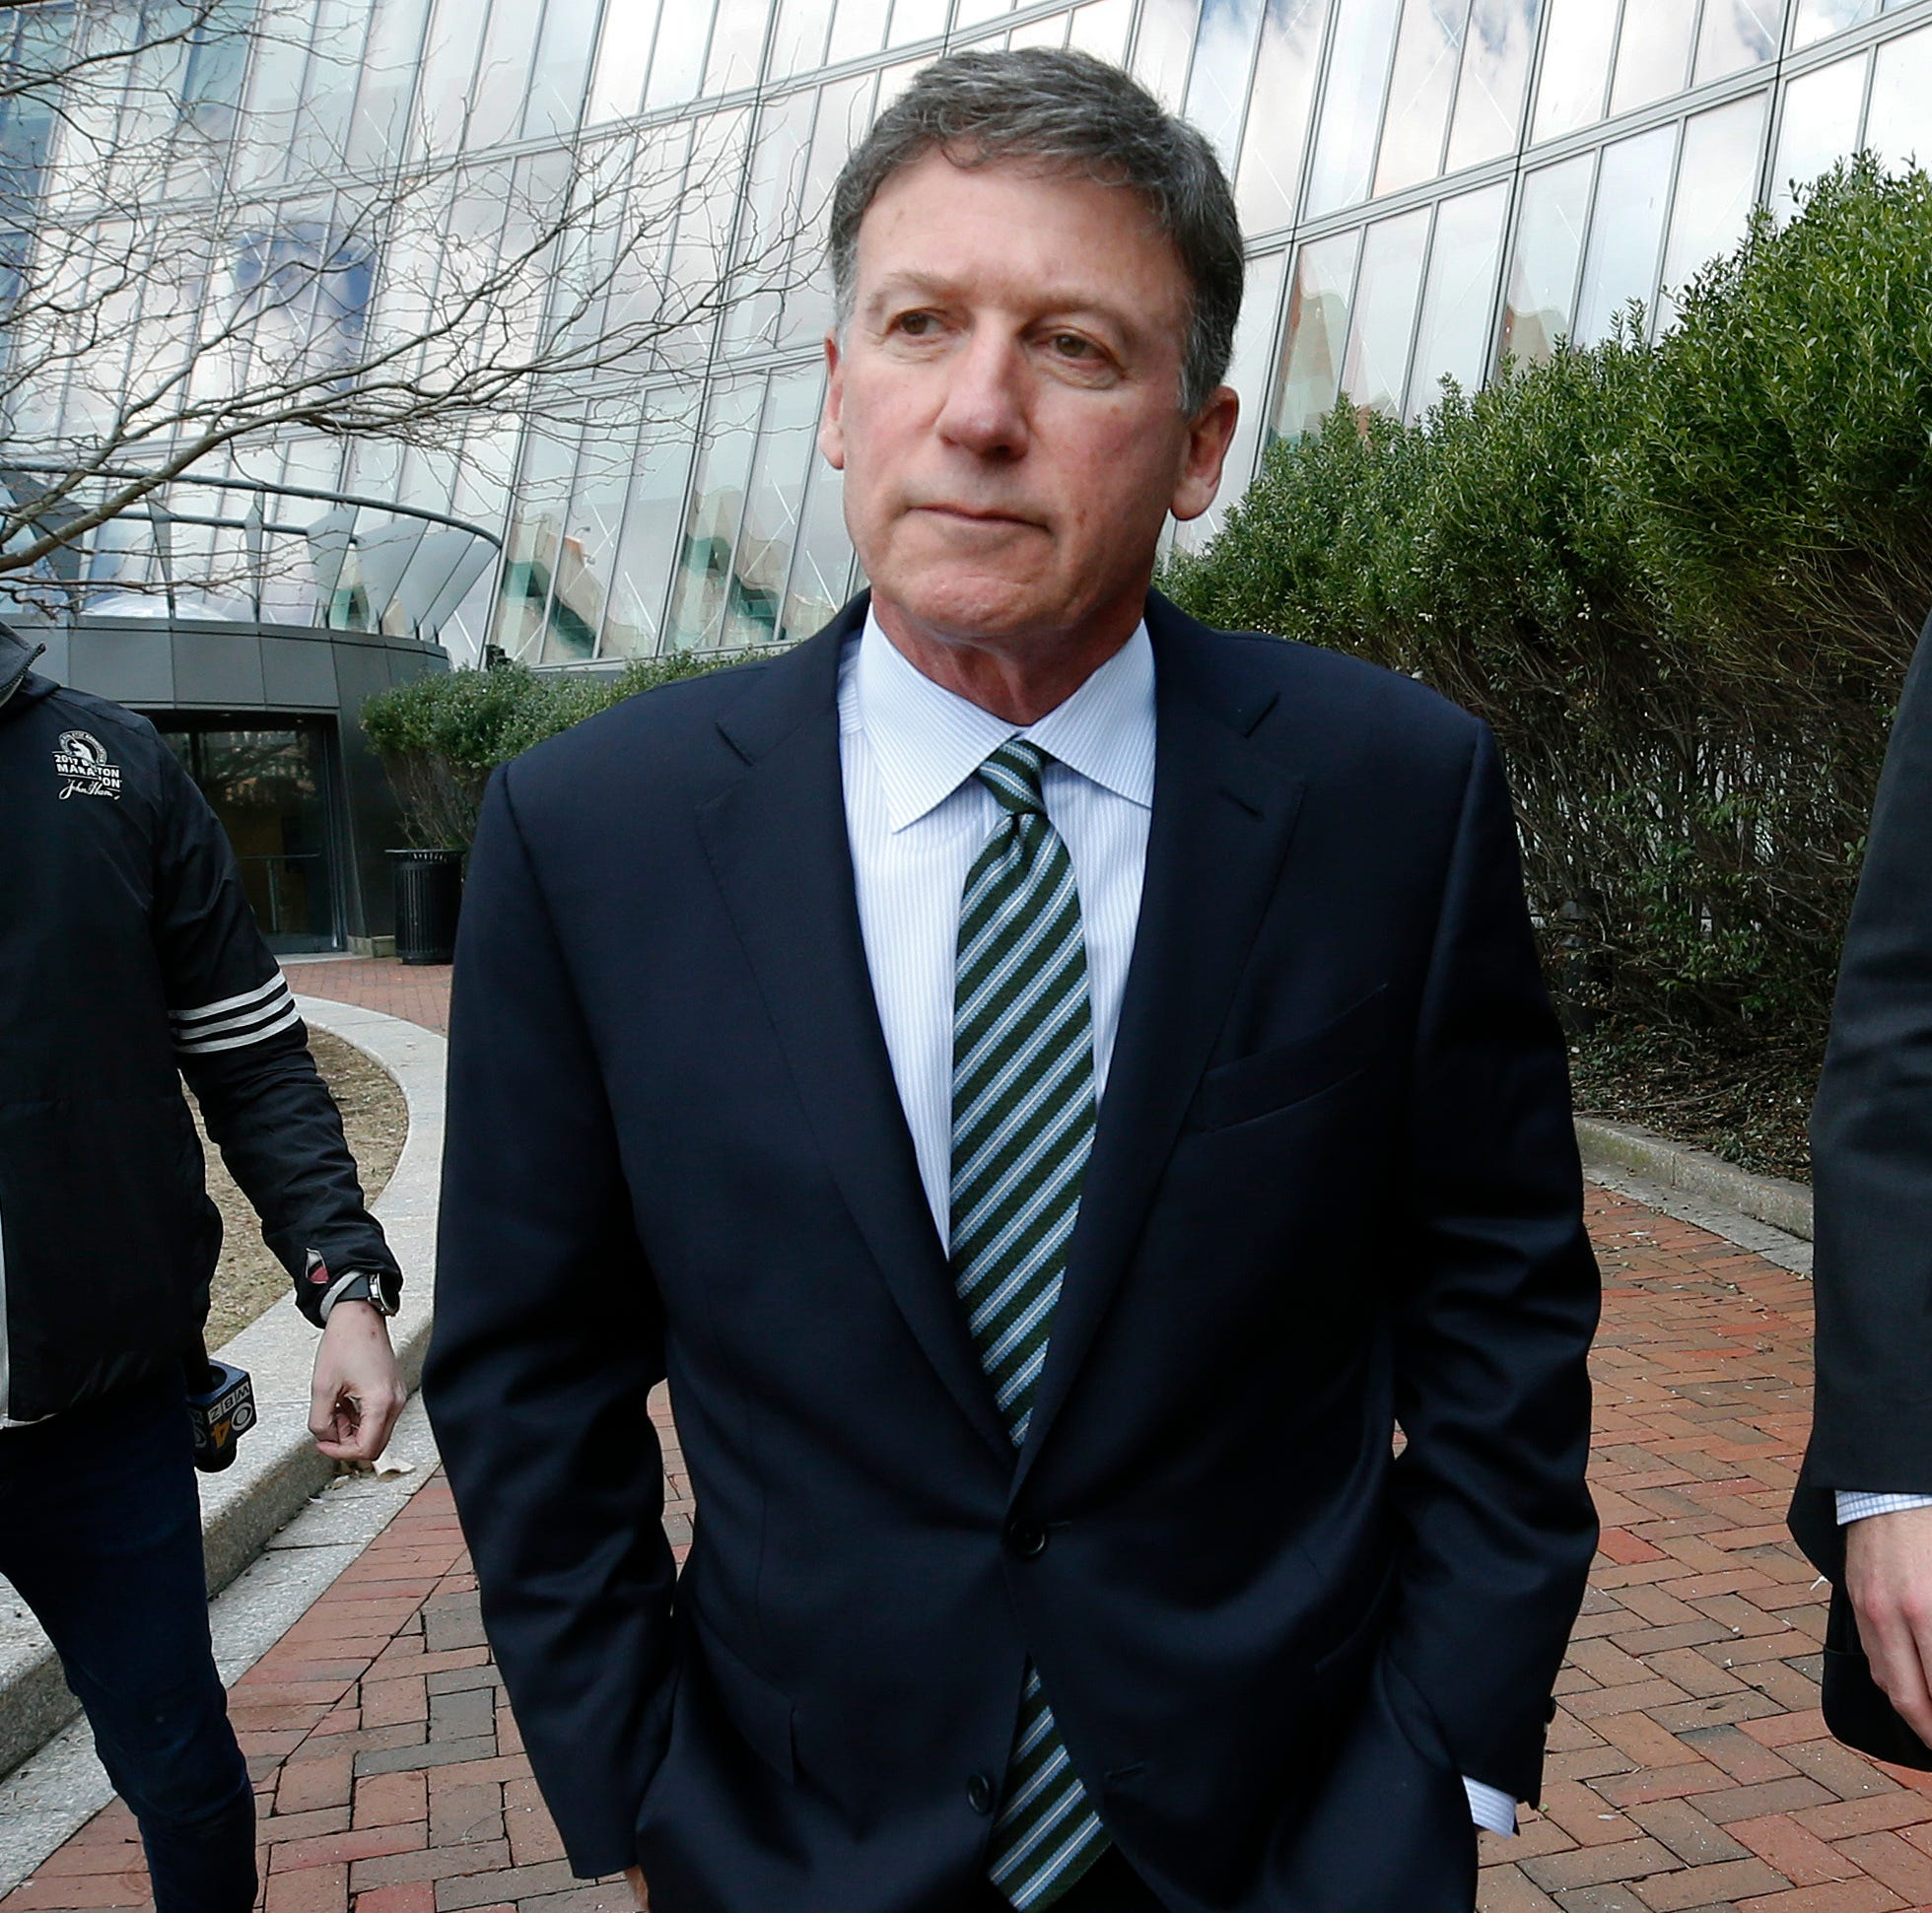 Wealthy California couple expected to plead guilty in college admissions scandal